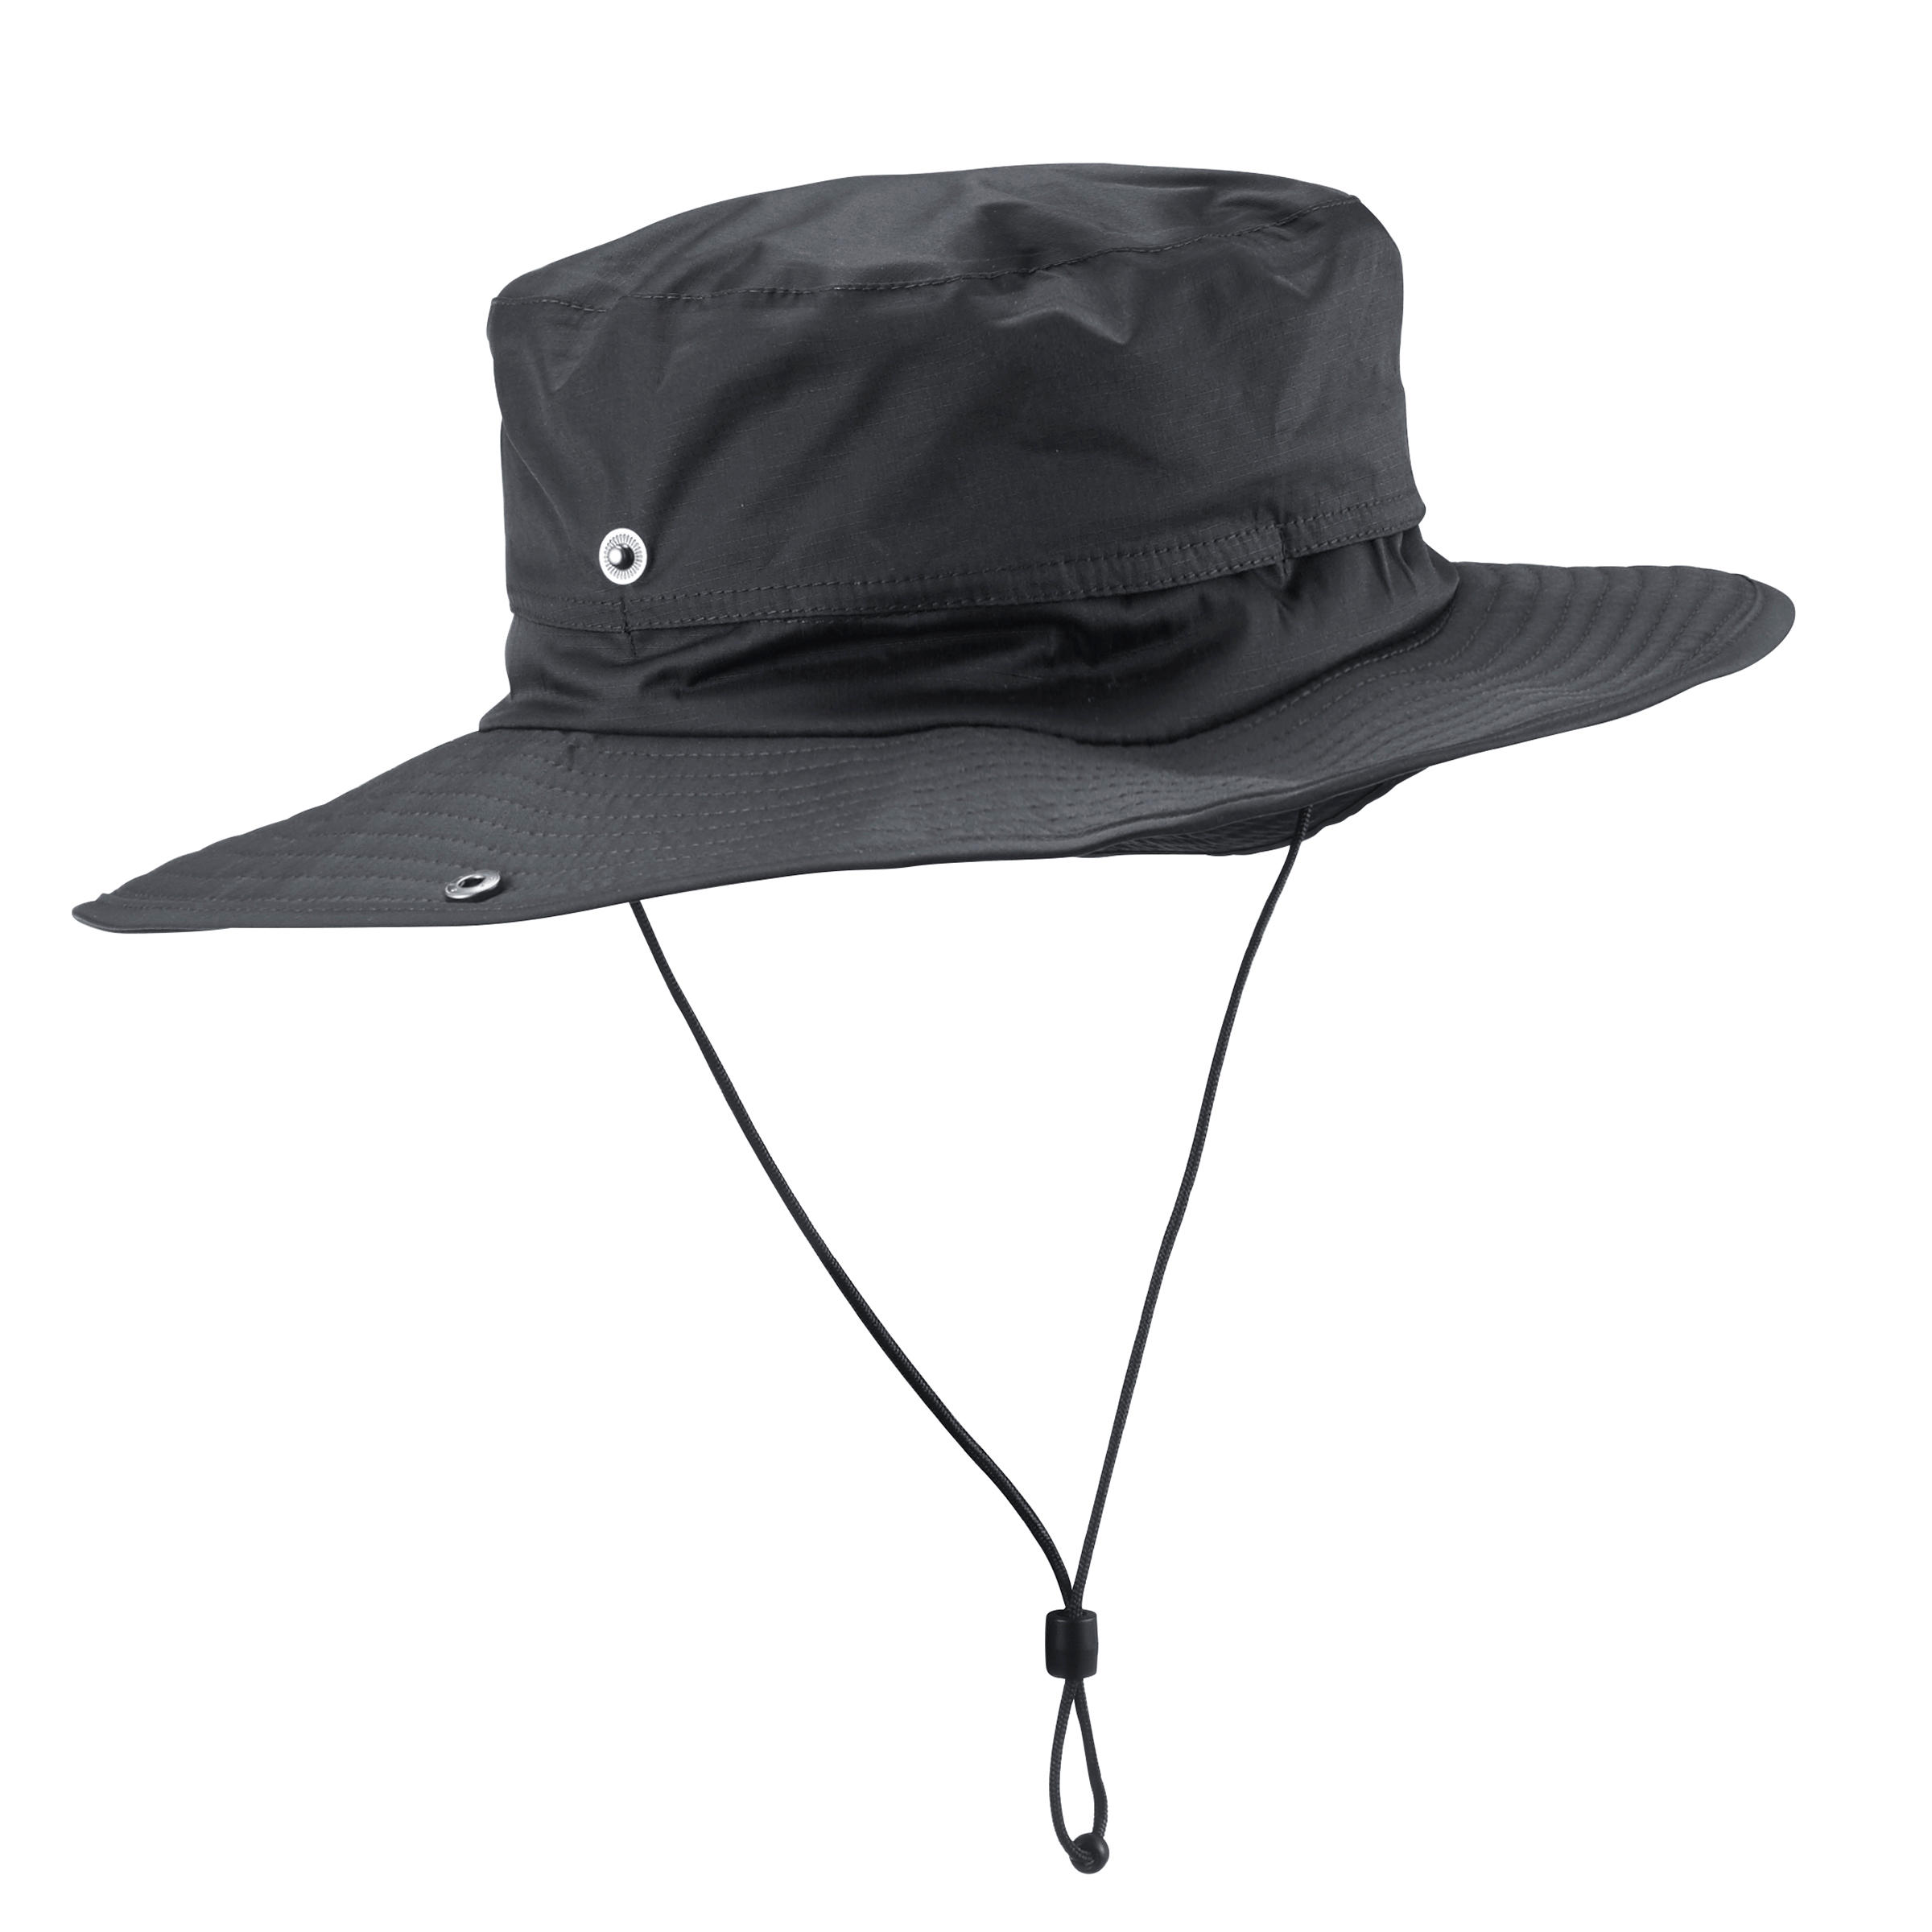 Hiking hat 900 waterproof...